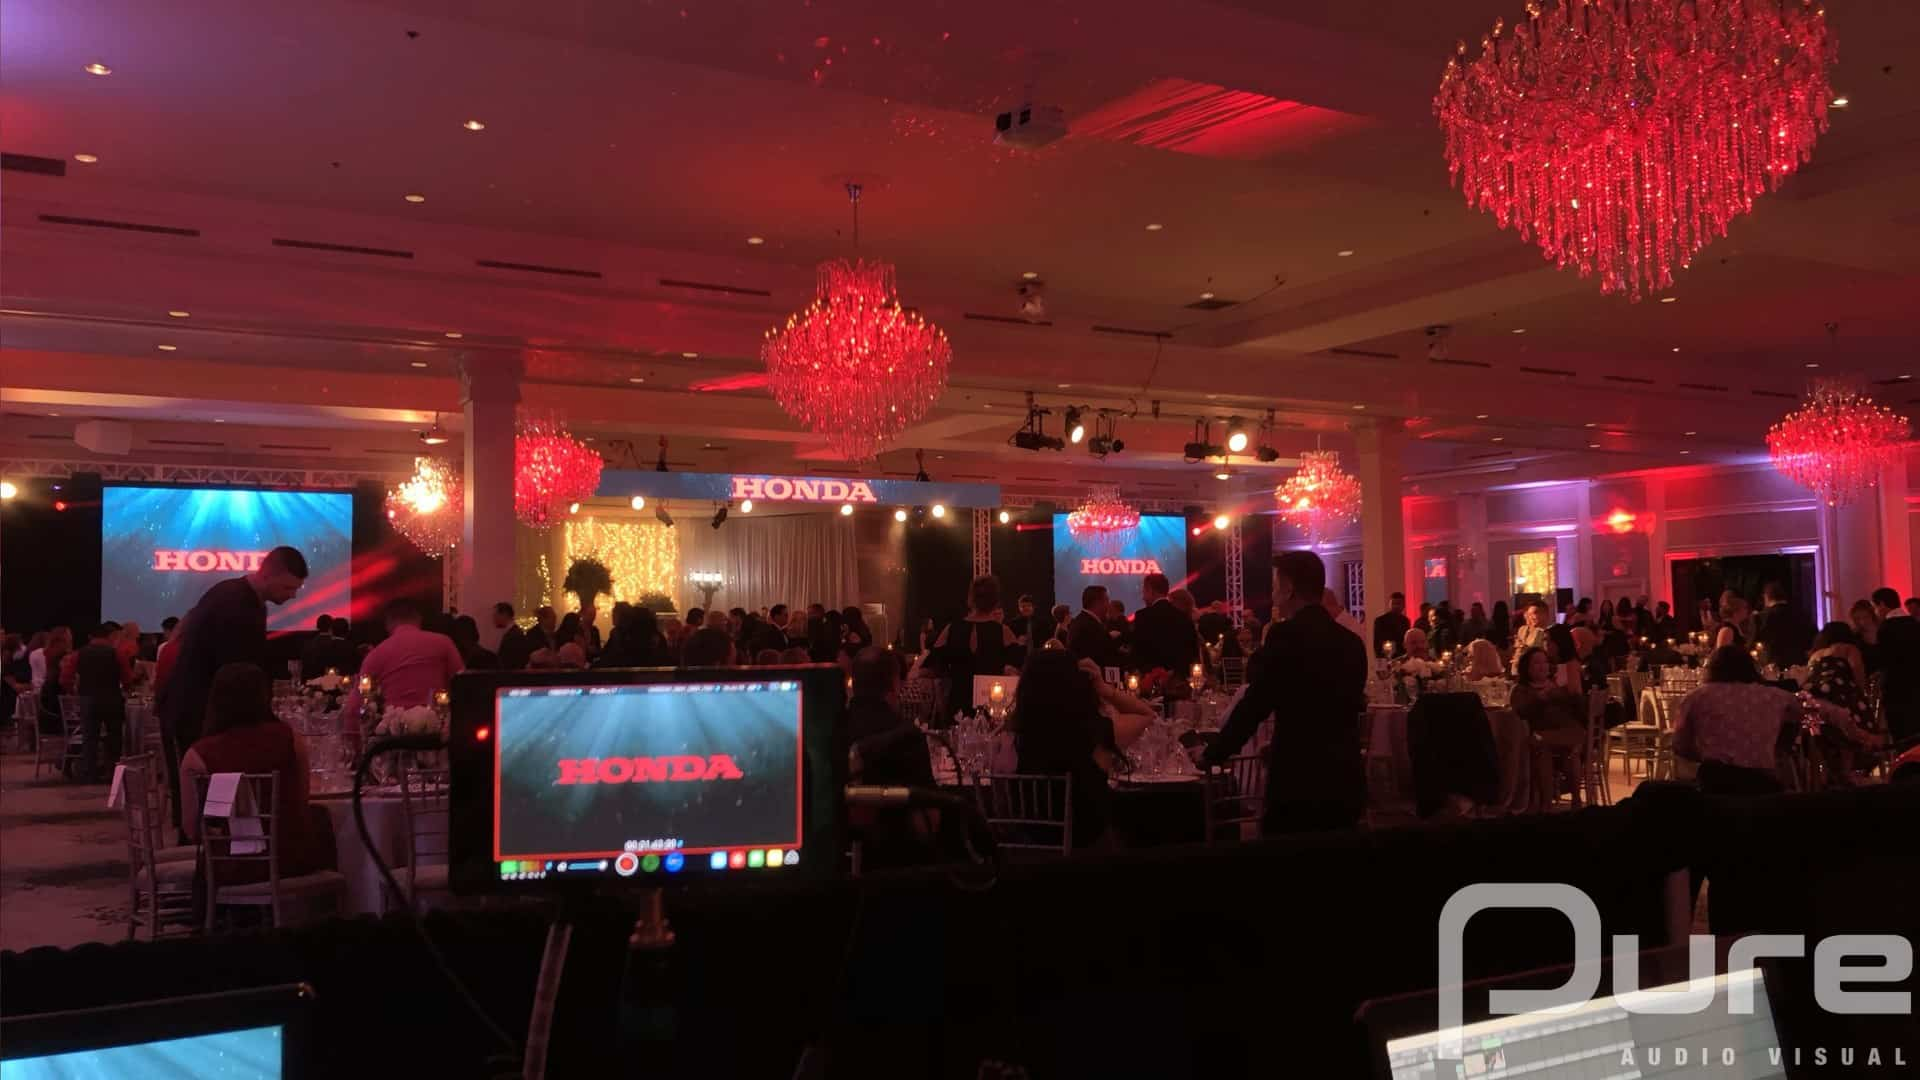 Audio Visual Production Including LED Video. Lighting. Audio, truss, staging.